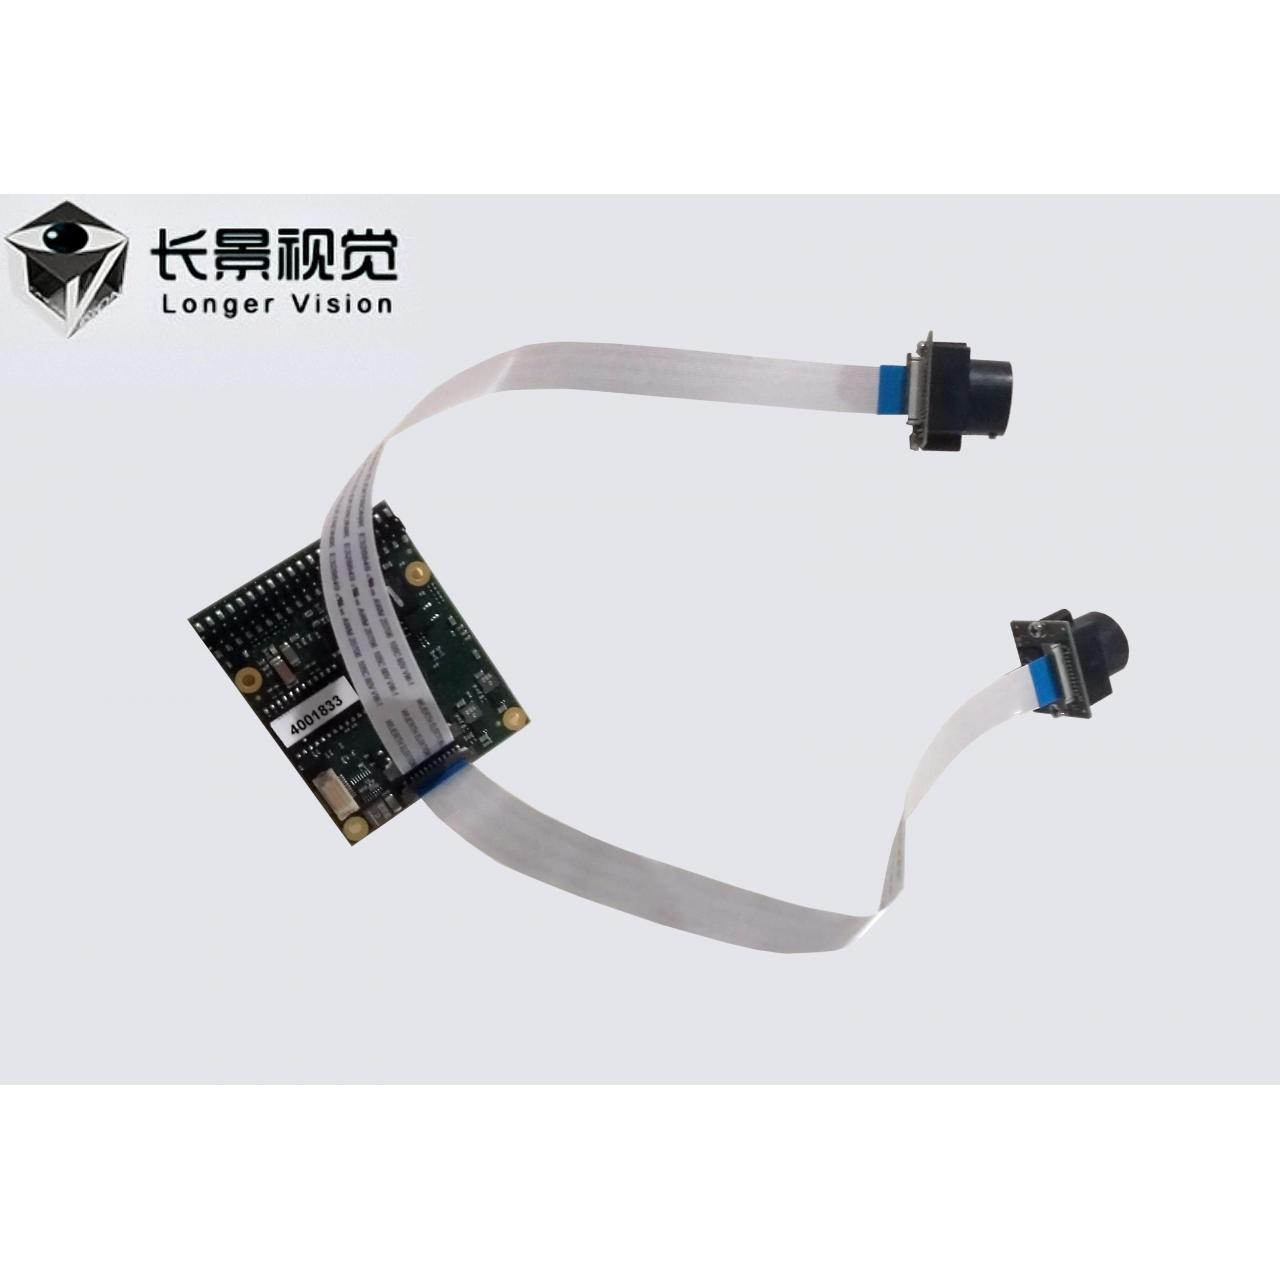 Buy cheap E2V 1.3 M B/W or Color Global Shutter Binocular Cameras Module from wholesalers